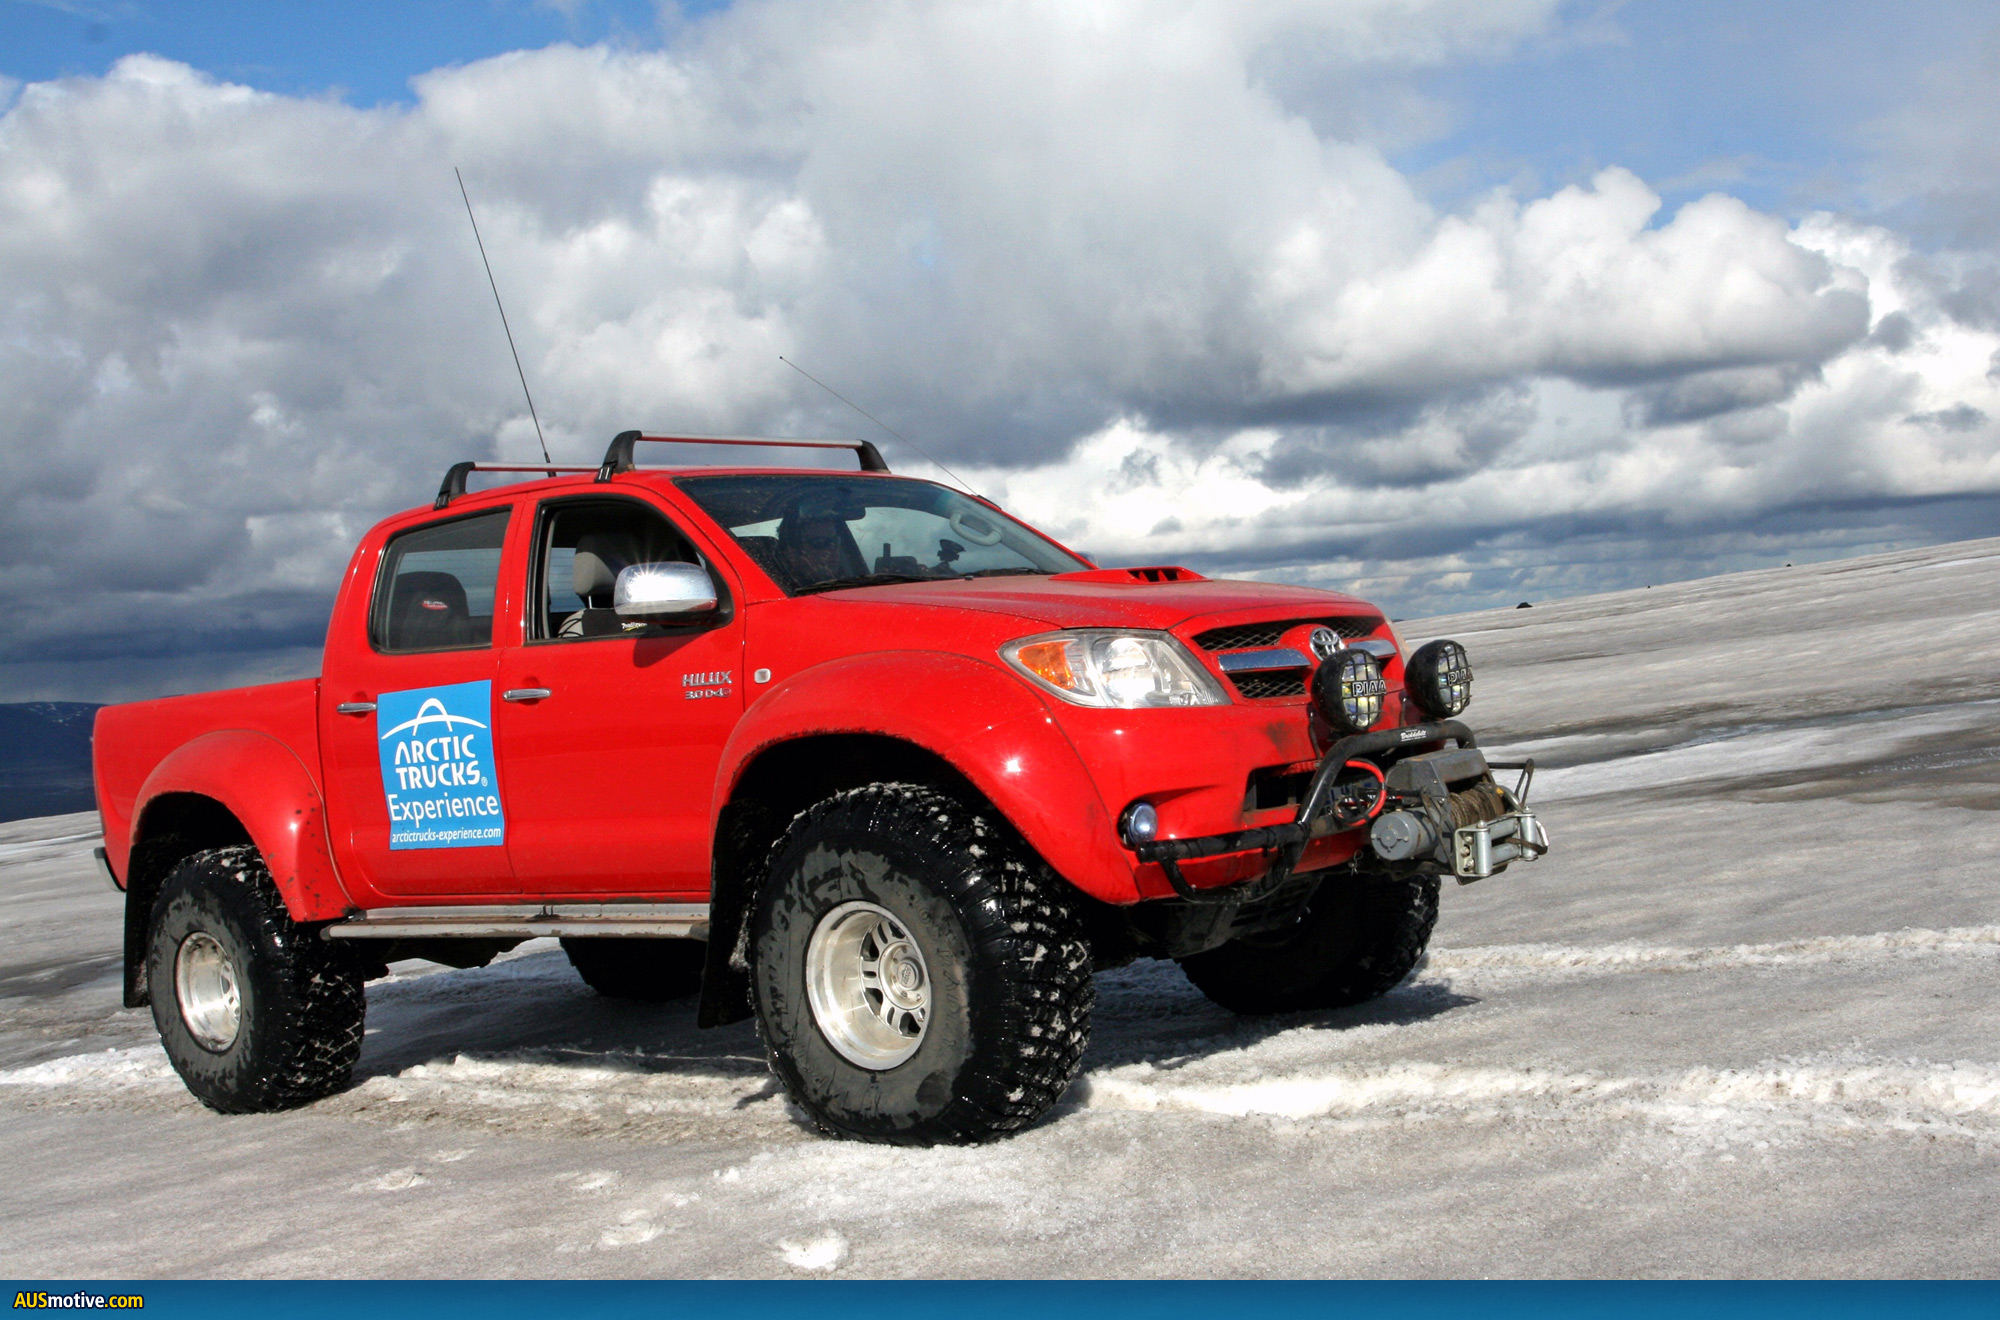 First Car To Get To The North Pole